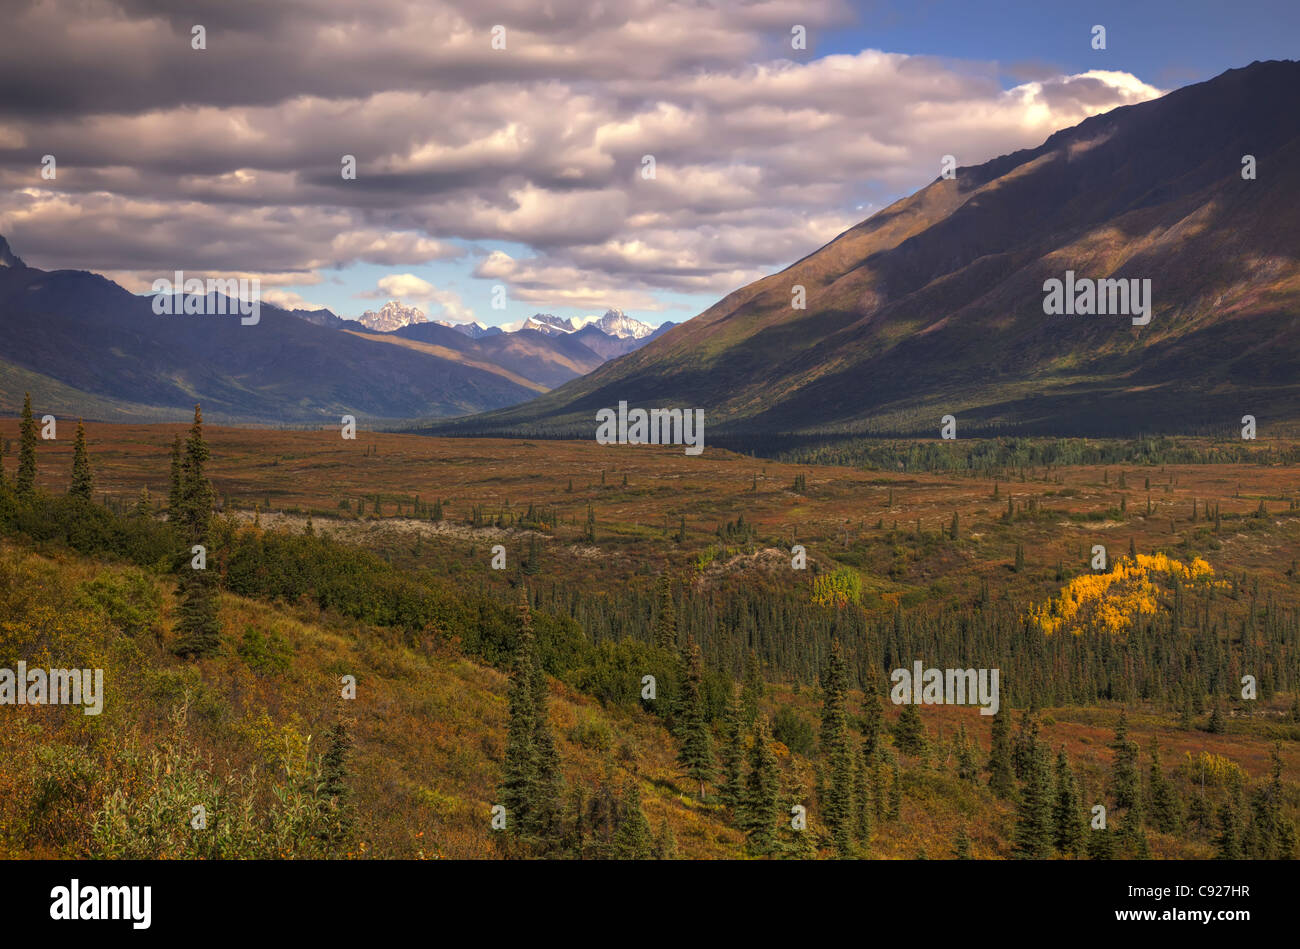 View of the Alaska Range from above Rainy Pass Lodge near Puntilla Lake. - Stock Image